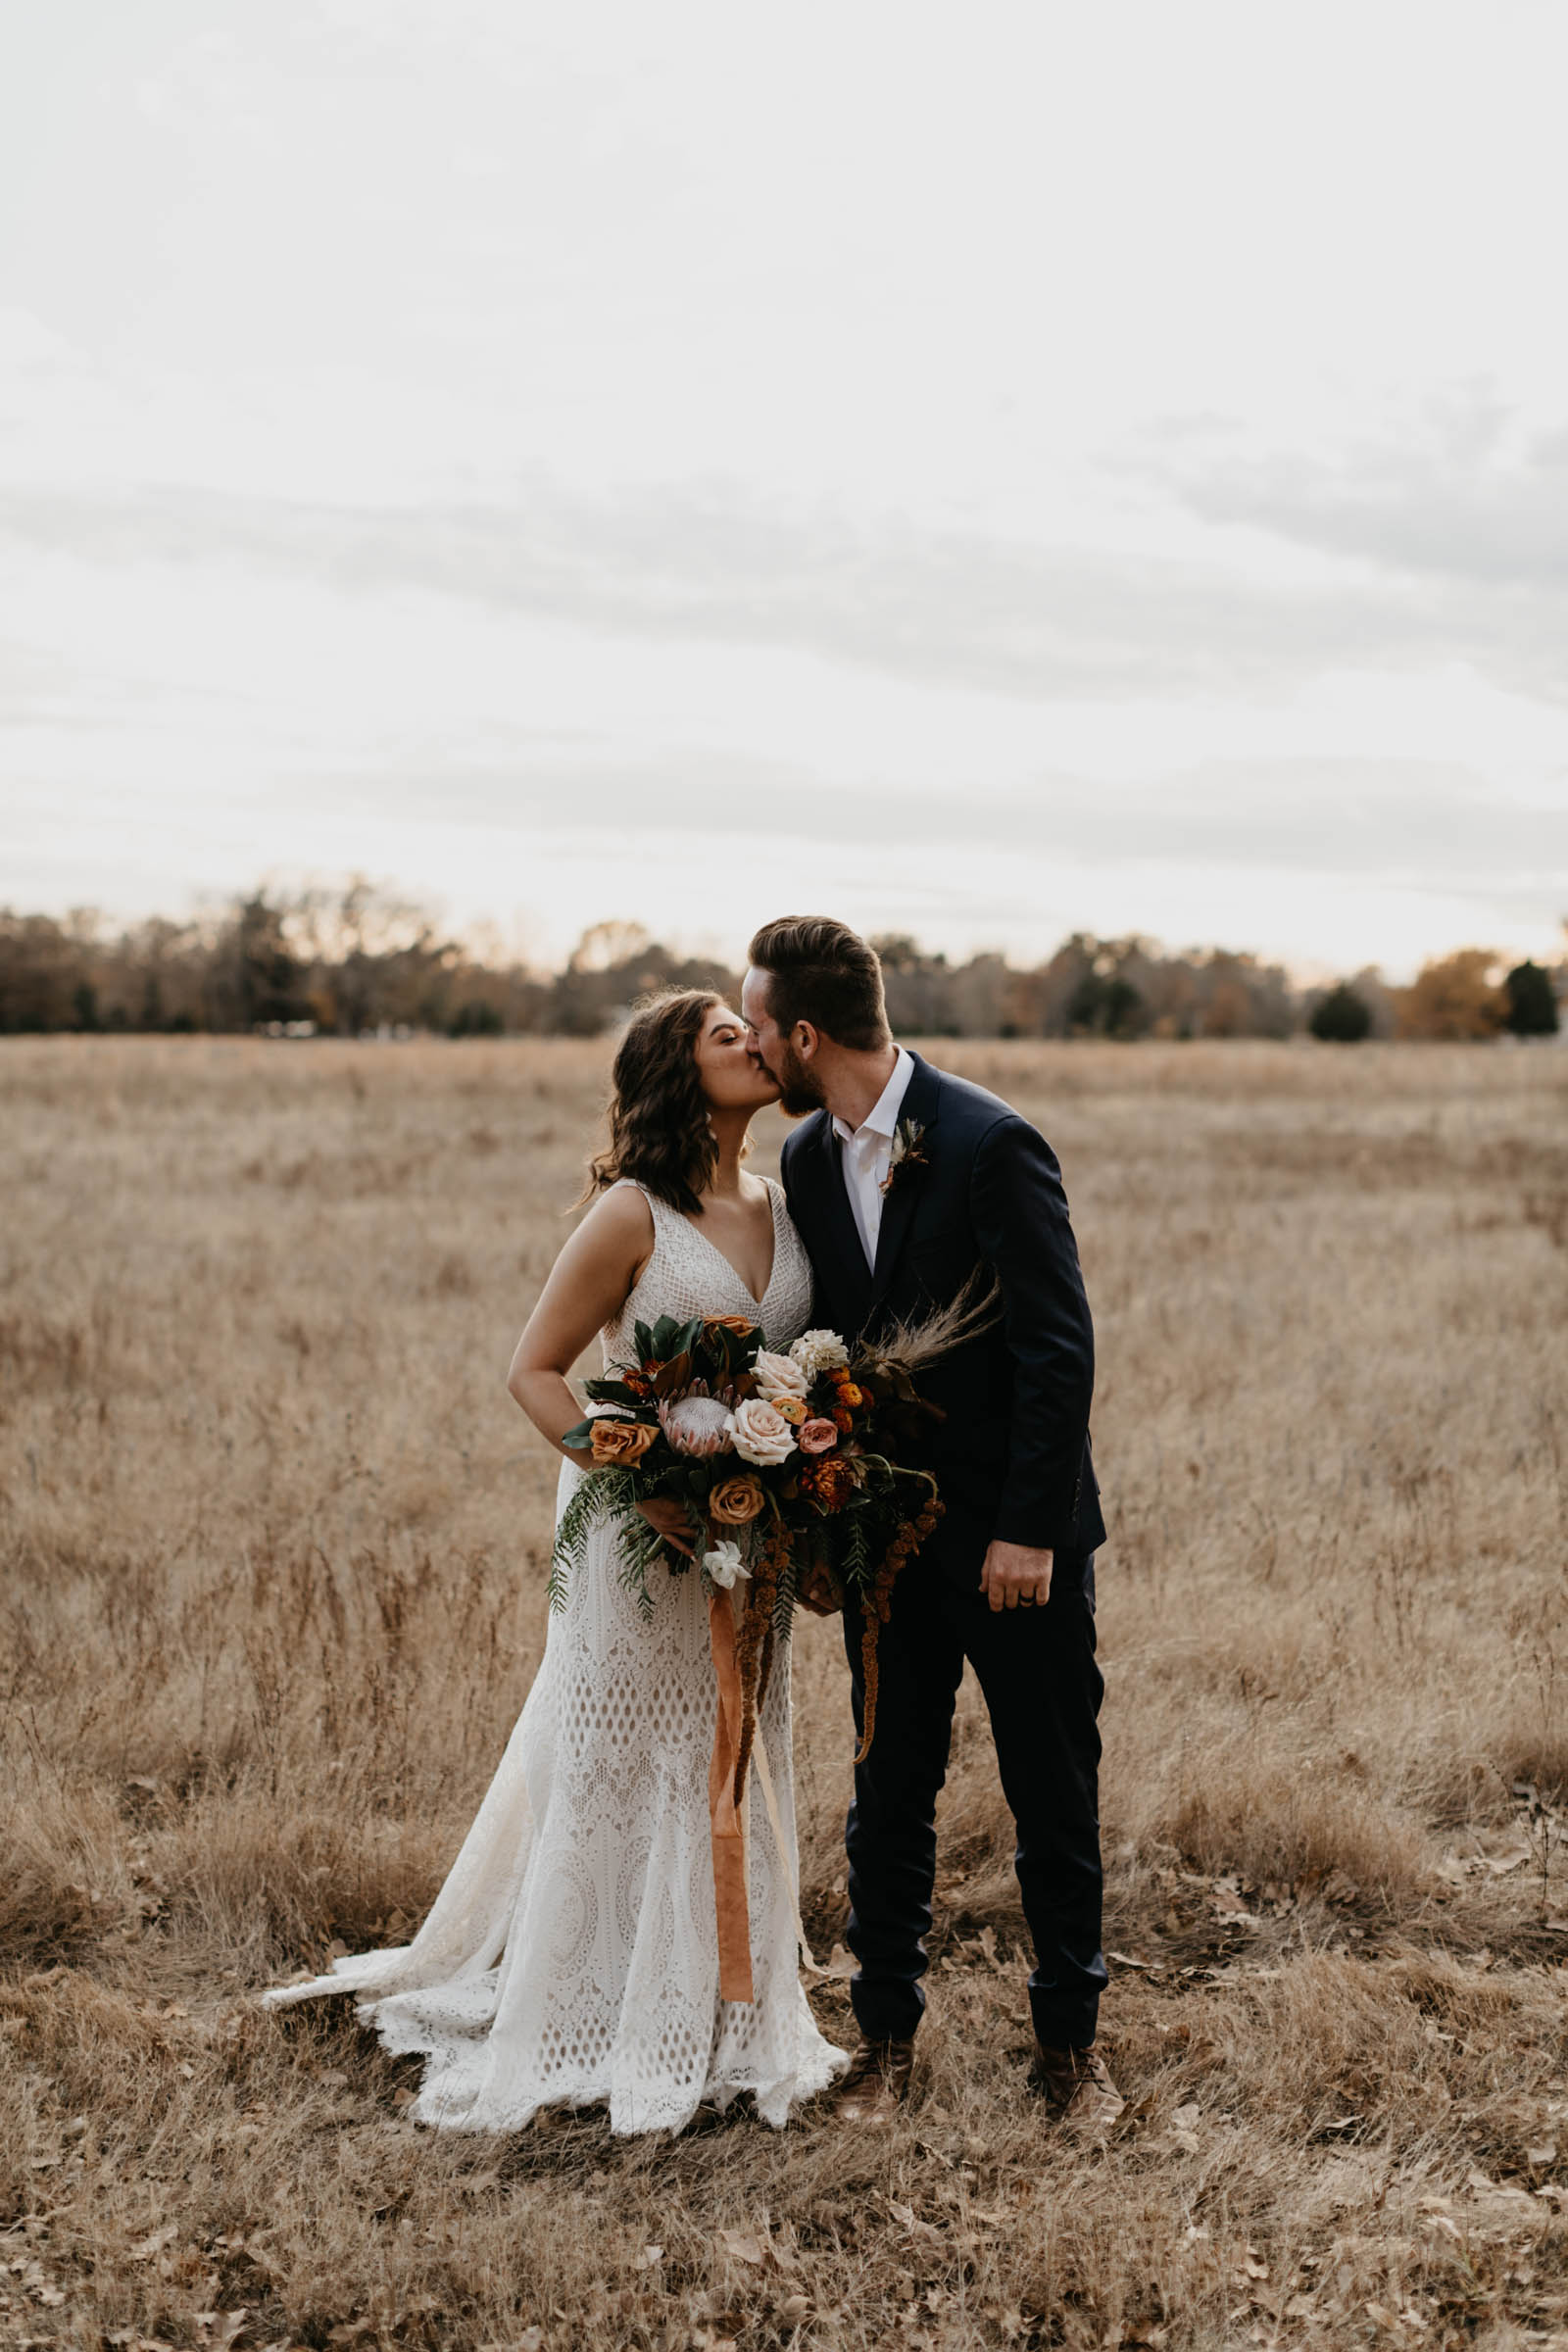 Married couple kissing in a field for portraits after wedding ceremony